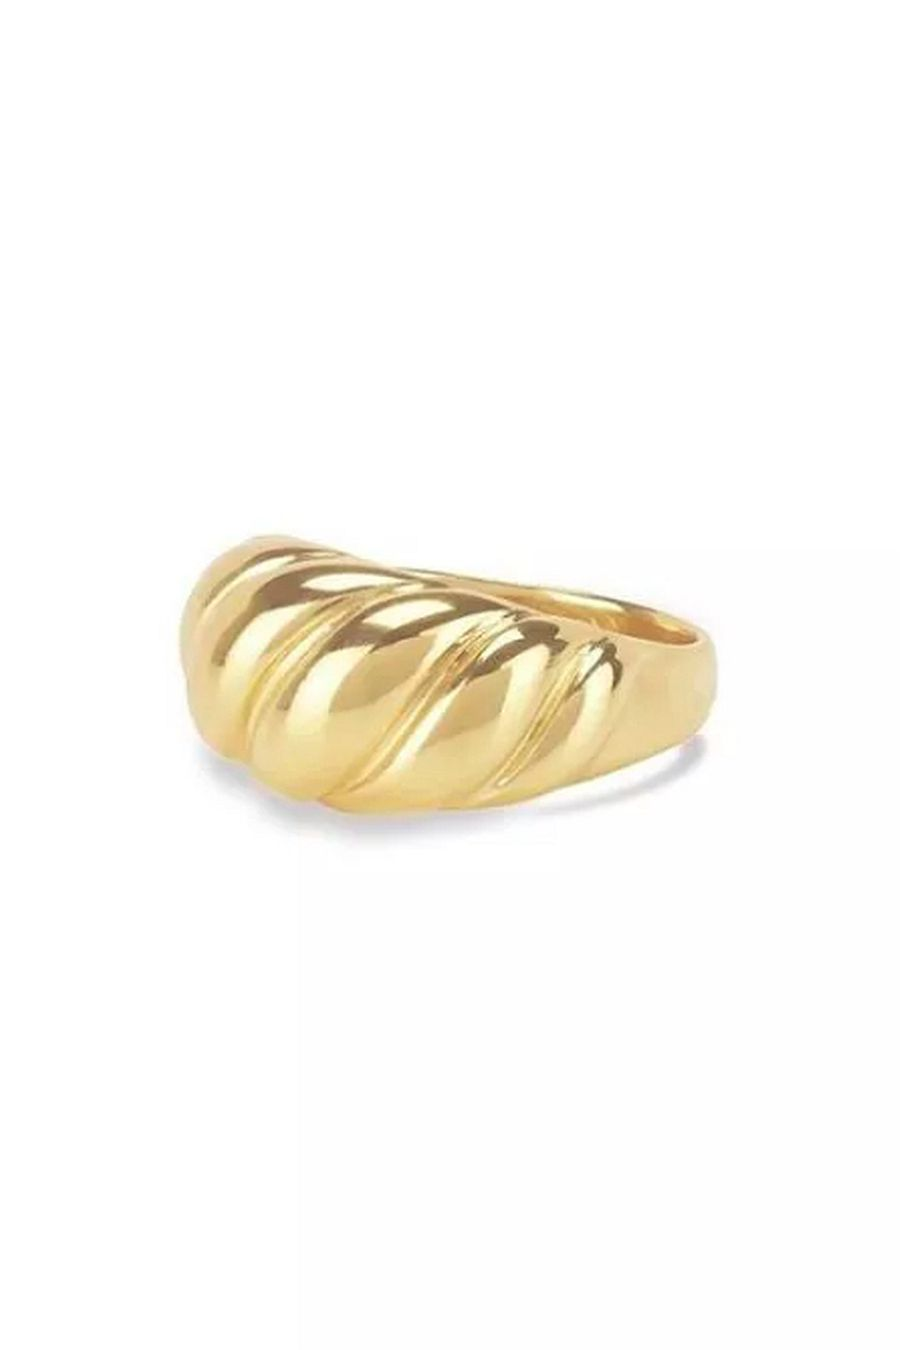 Oma The Label The Simone Ring